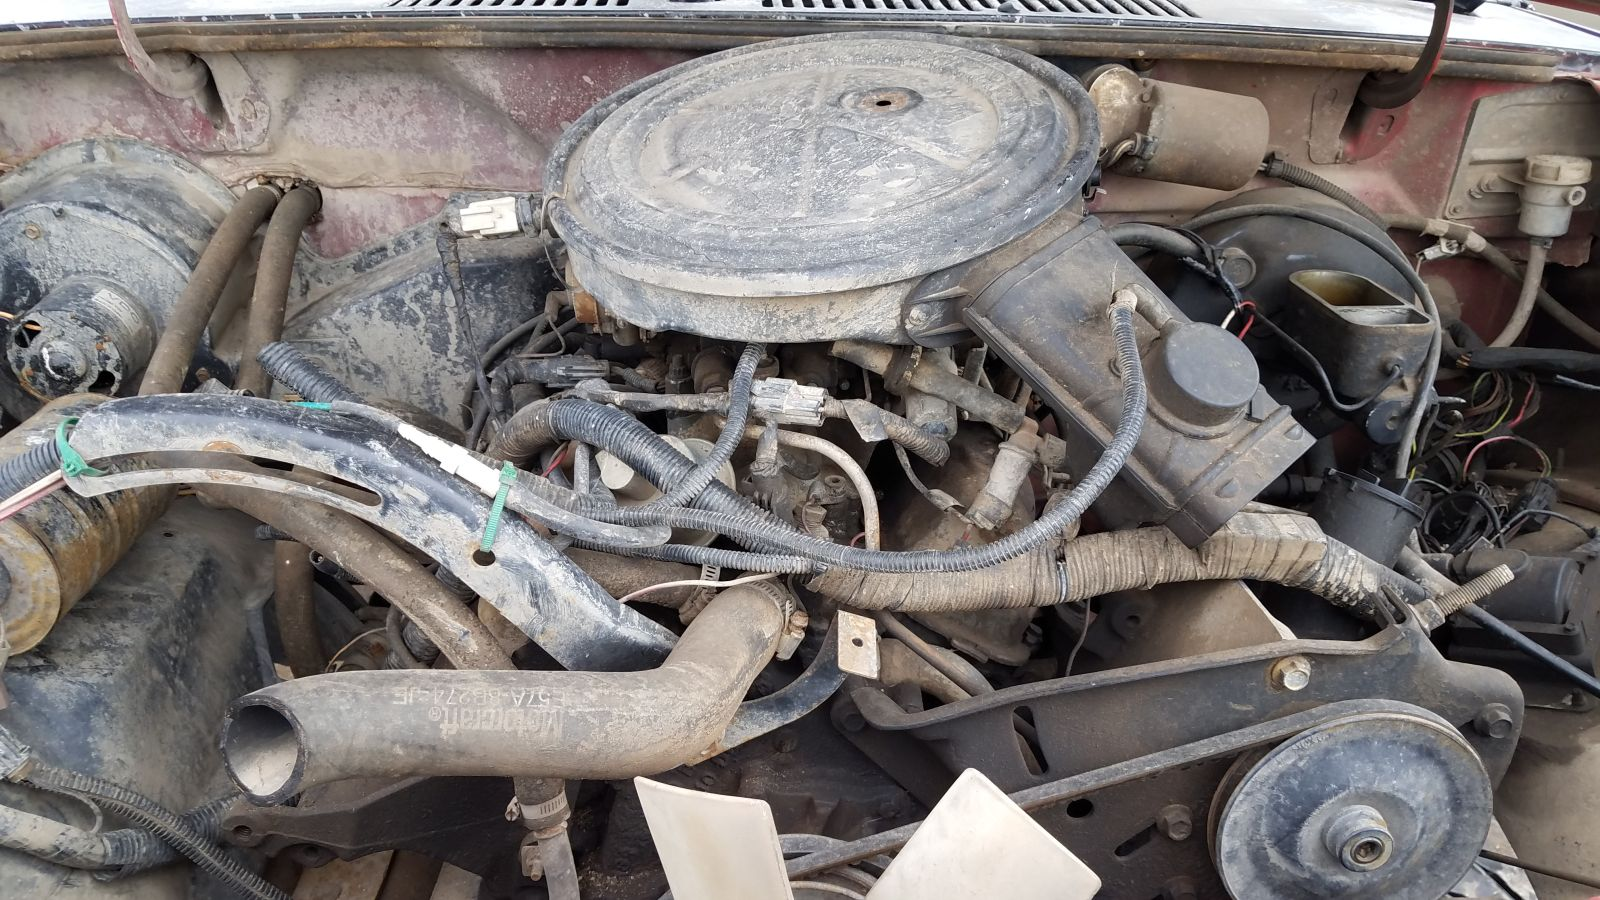 Junkyard Gem 1985 Ford Bronco Ii Rocky Mountain High Sawzall In Practice Nearly Every Had A 28 Or 29 Liter Cologne V6 The Same Engine Family Used Capri